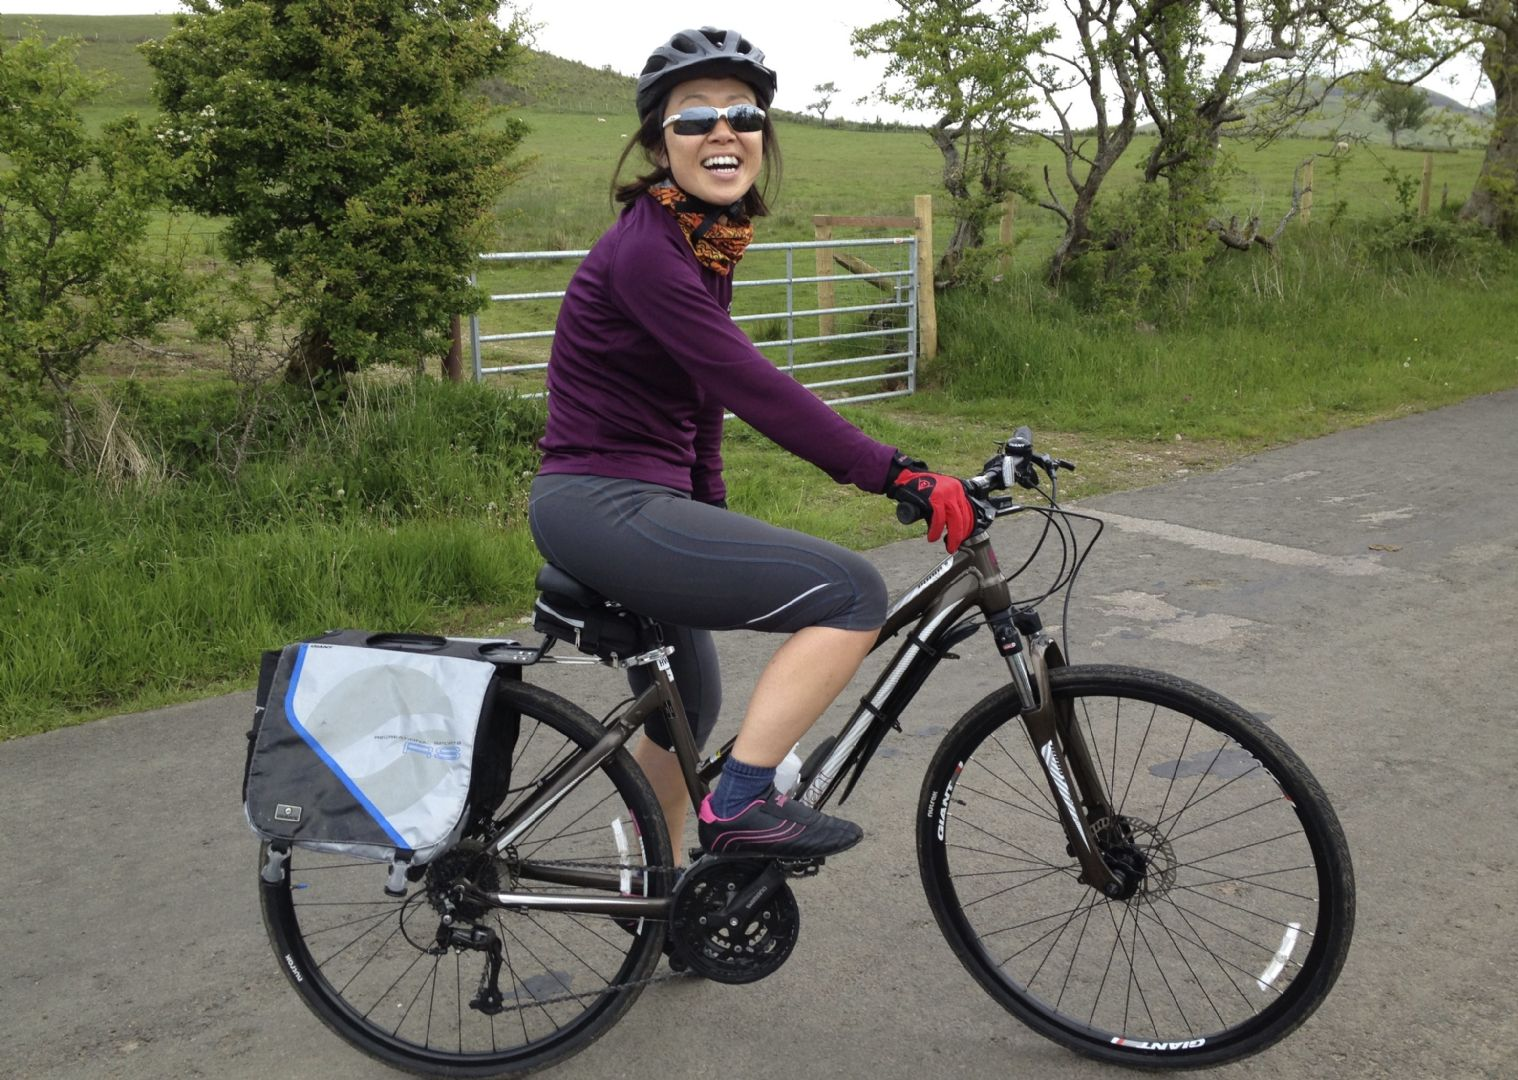 _Customer.103238.16263.jpg - UK - C2C - Coast to Coast 4 Days Cycling - Self-Guided Leisure Cycling Holiday - Leisure Cycling